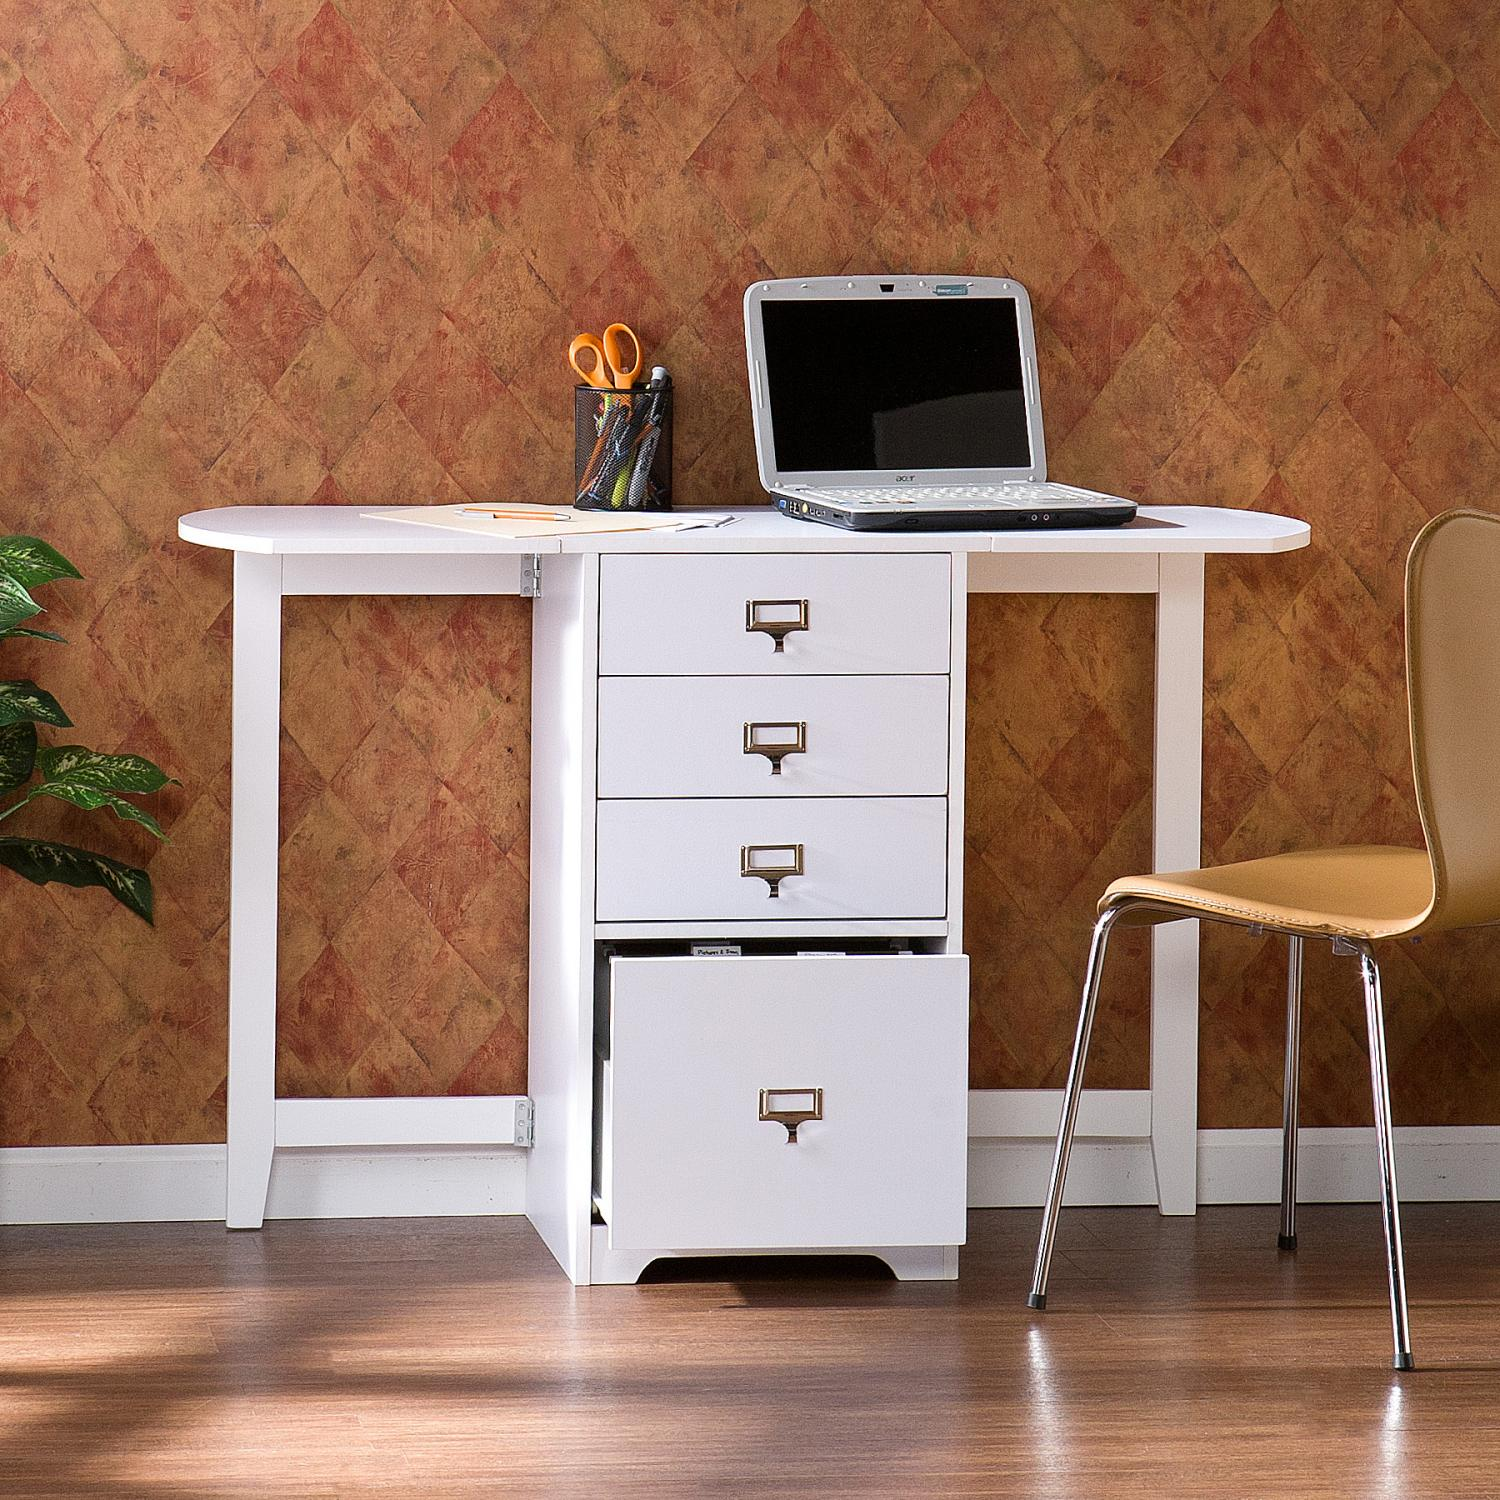 Delightful Fold Out Organizer And Craft Desk   White$199.99